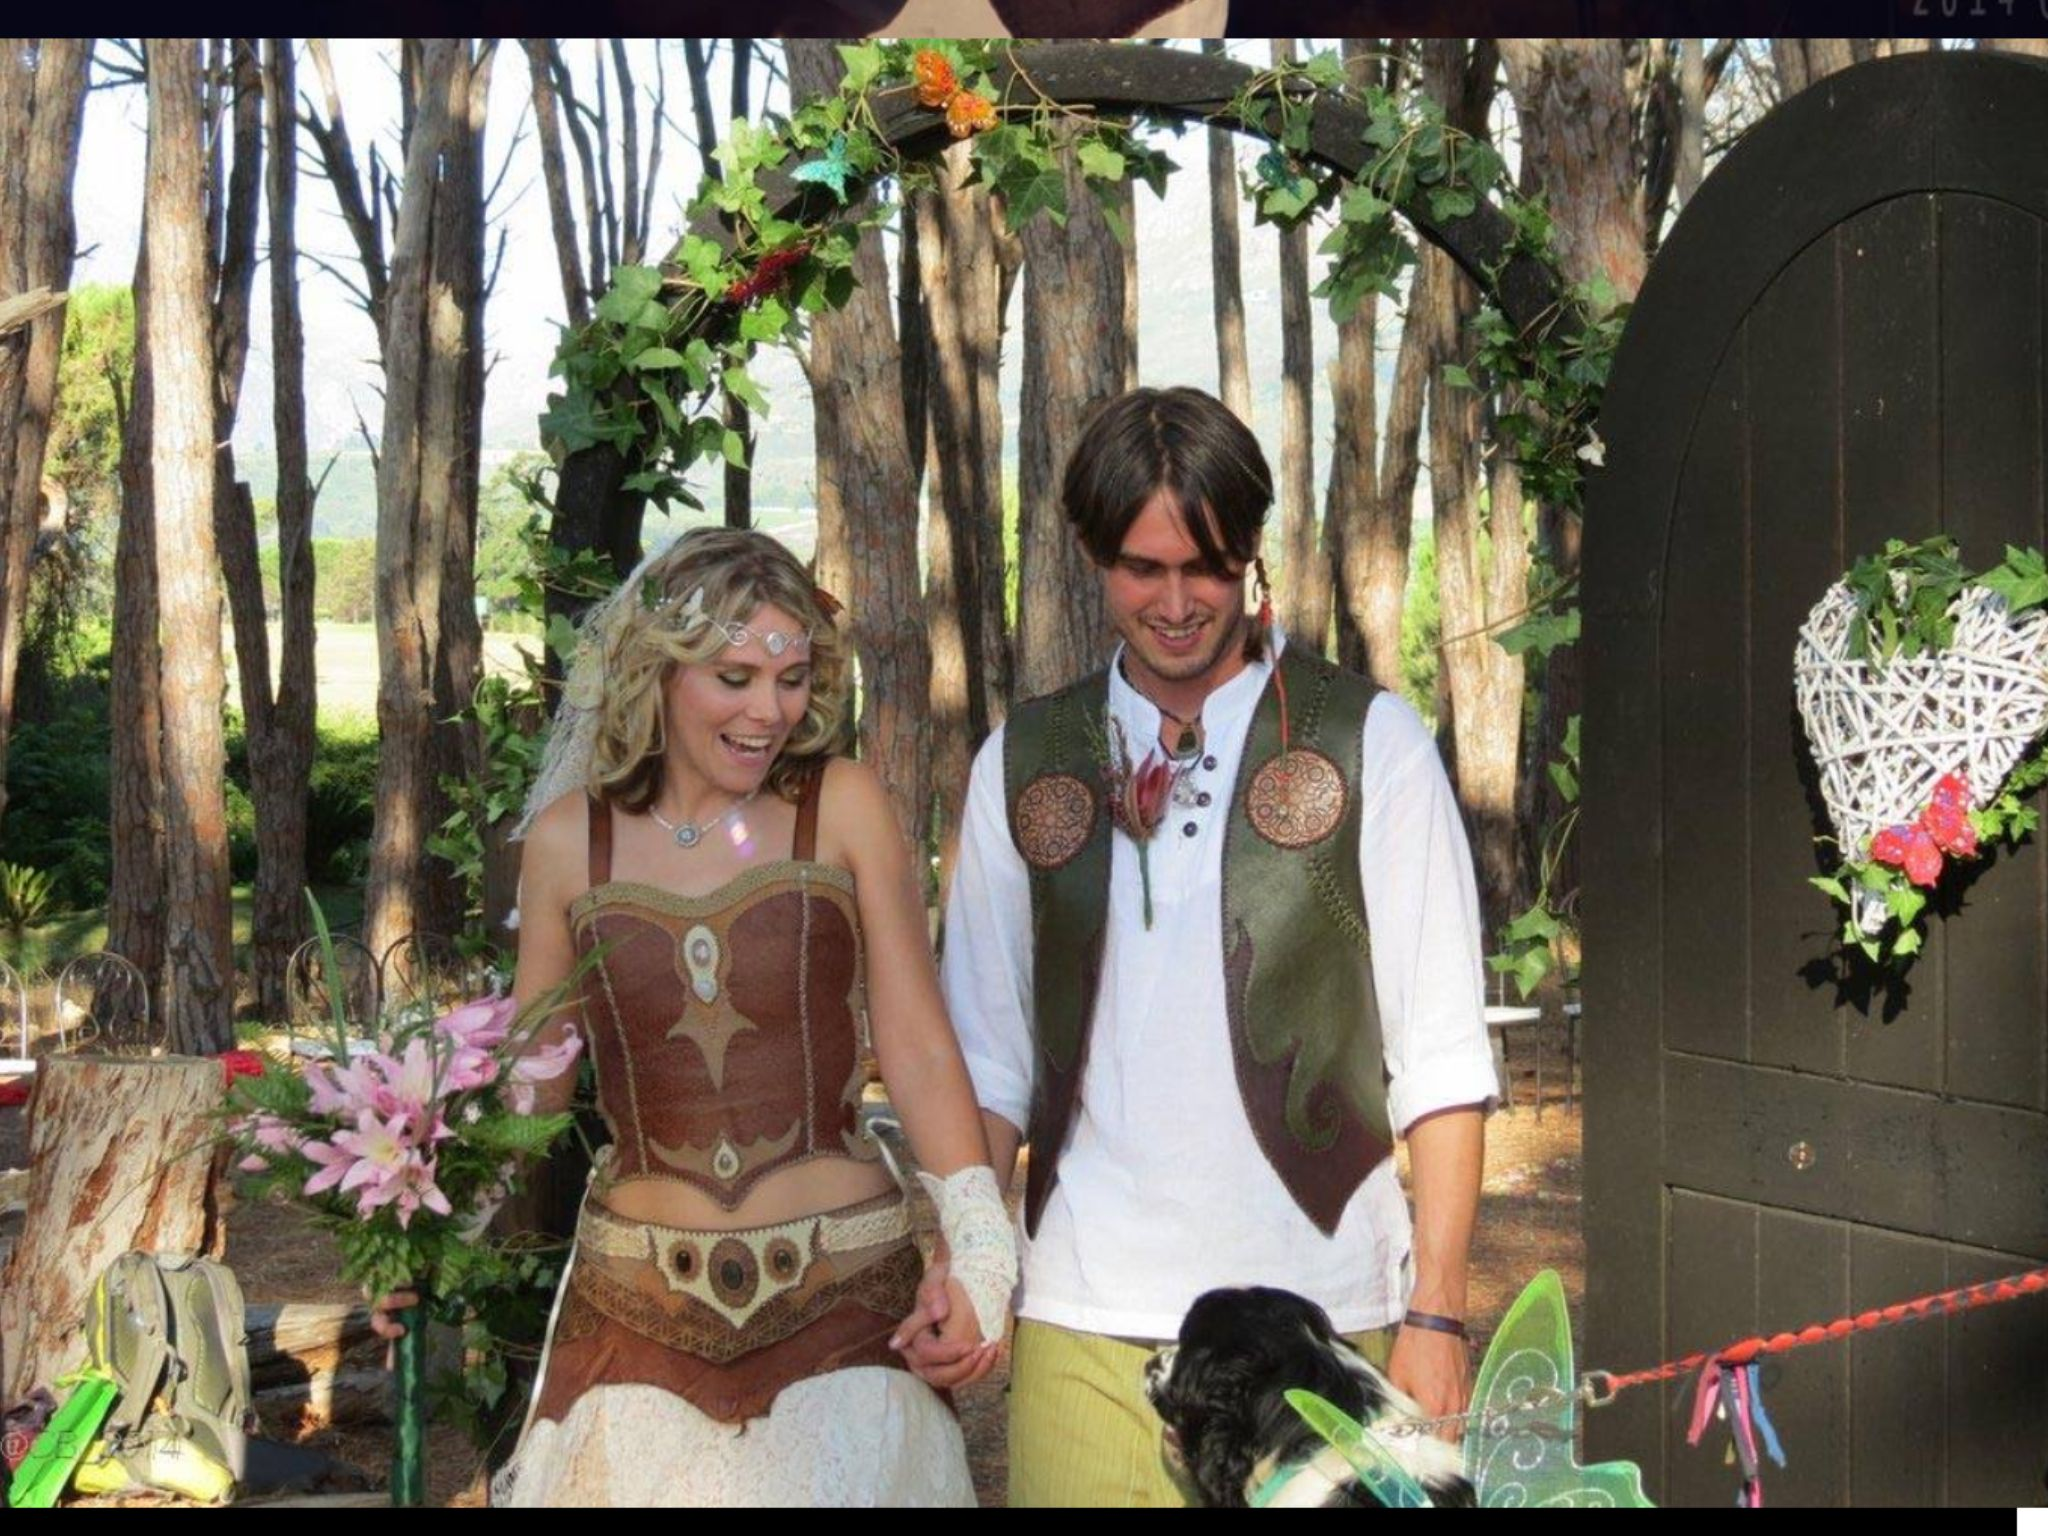 Earthy forest fairy wedding @ Winery Road Forest | Forest ...